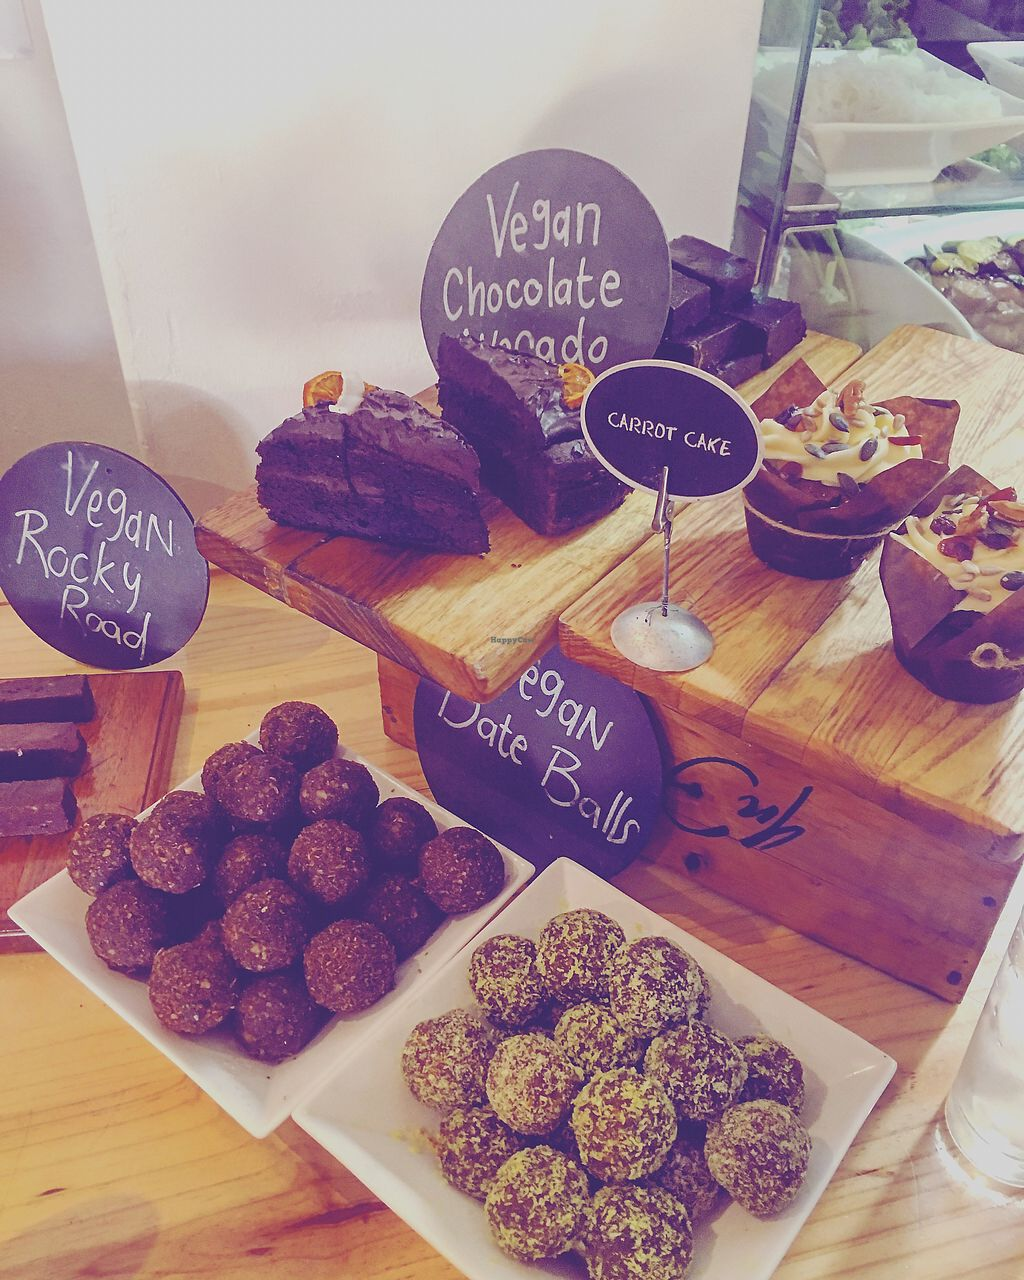 """Photo of Infood Coffee Society  by <a href=""""/members/profile/NikitaLeys"""">NikitaLeys</a> <br/>Some vegan delights ❤️ <br/> April 15, 2018  - <a href='/contact/abuse/image/116435/386345'>Report</a>"""